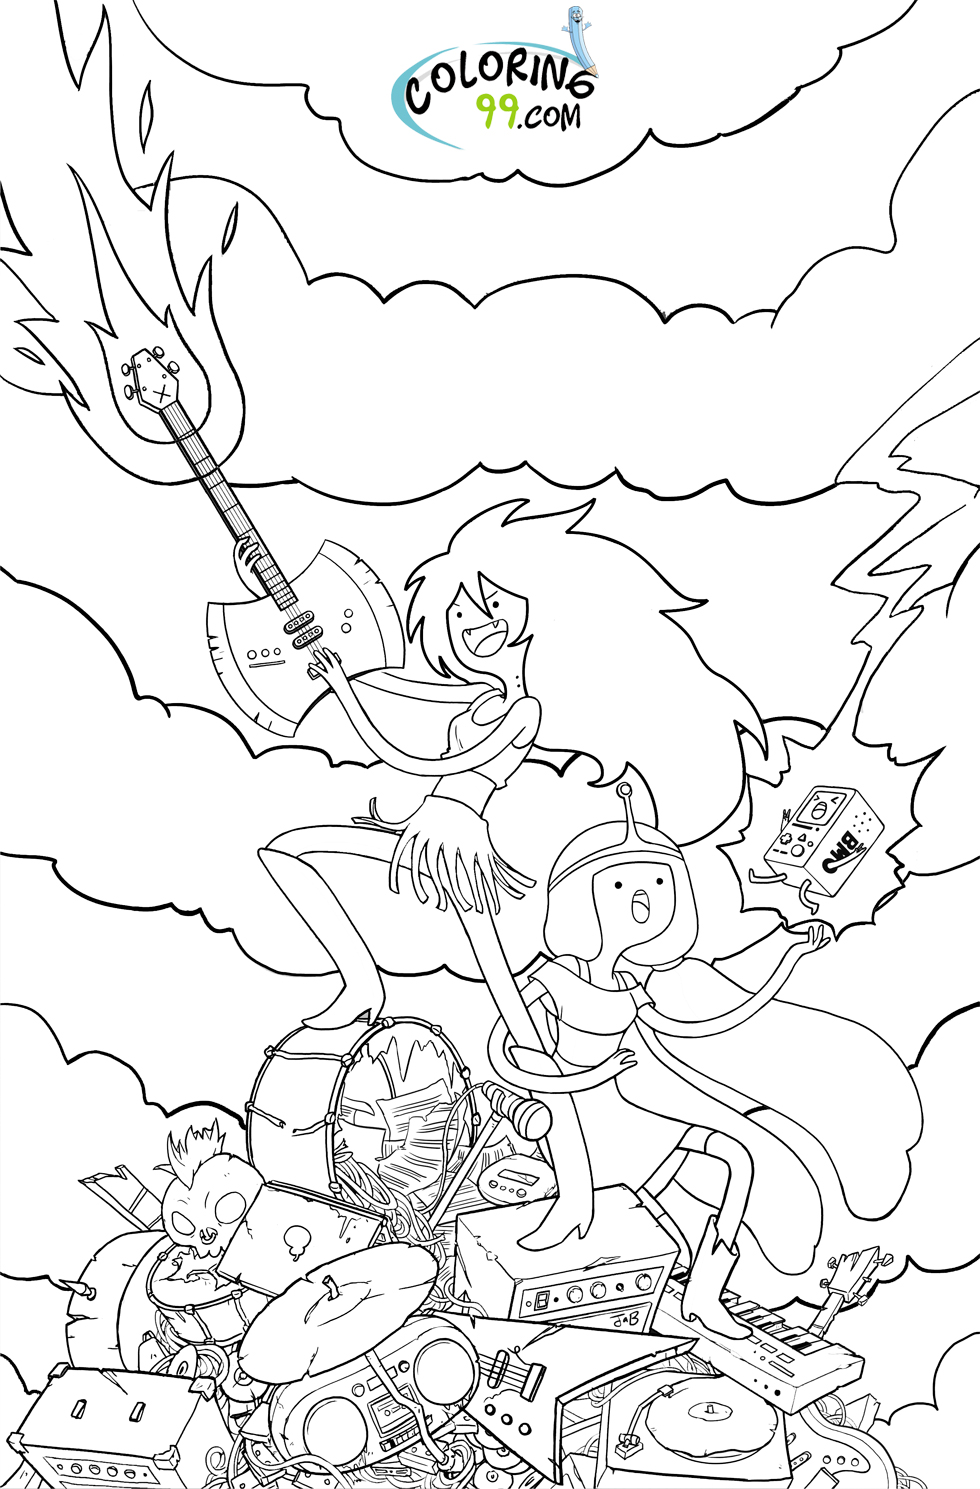 Adventure_Time_Coloring_Pages_01